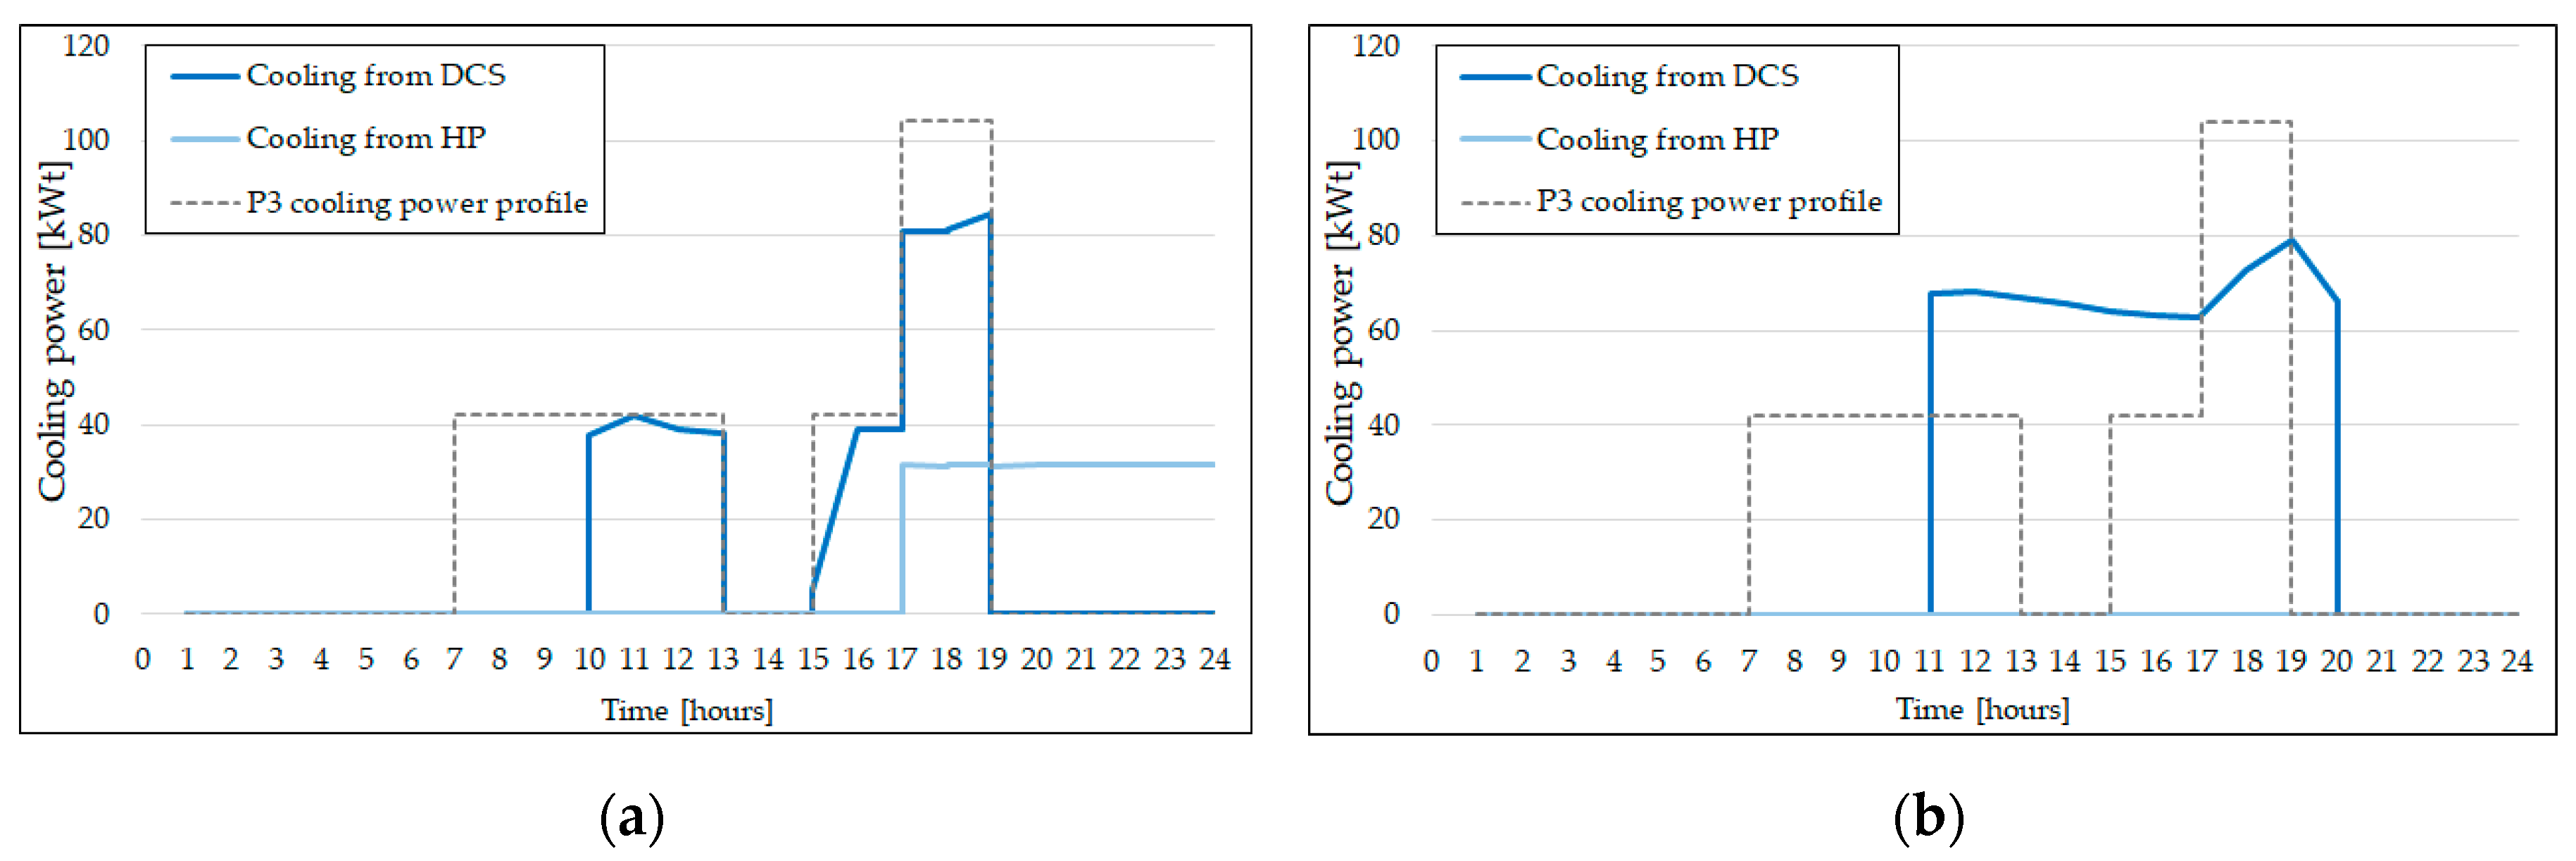 Energies | Free Full-Text | Potential of District Cooling Systems: A